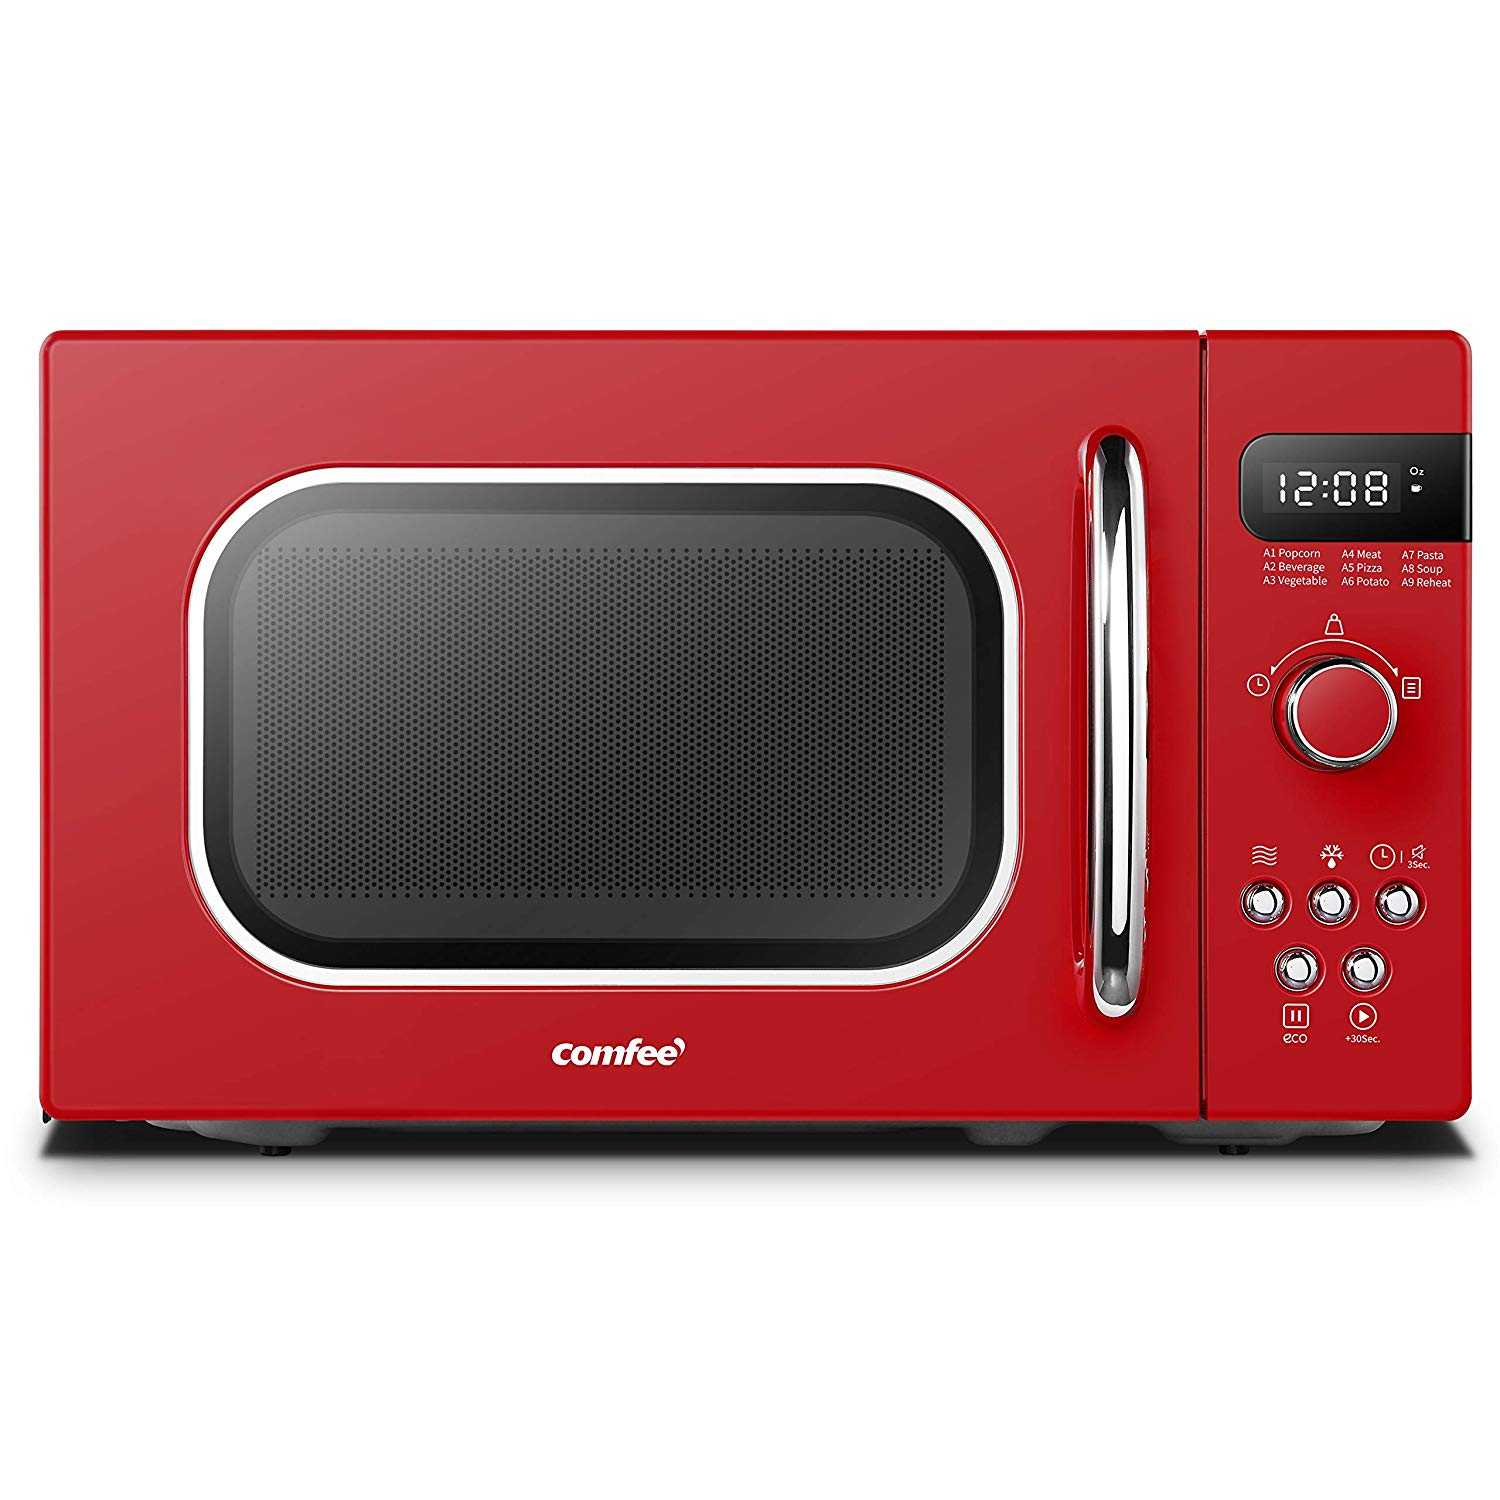 Best eco mode comfee microwave oven for office use